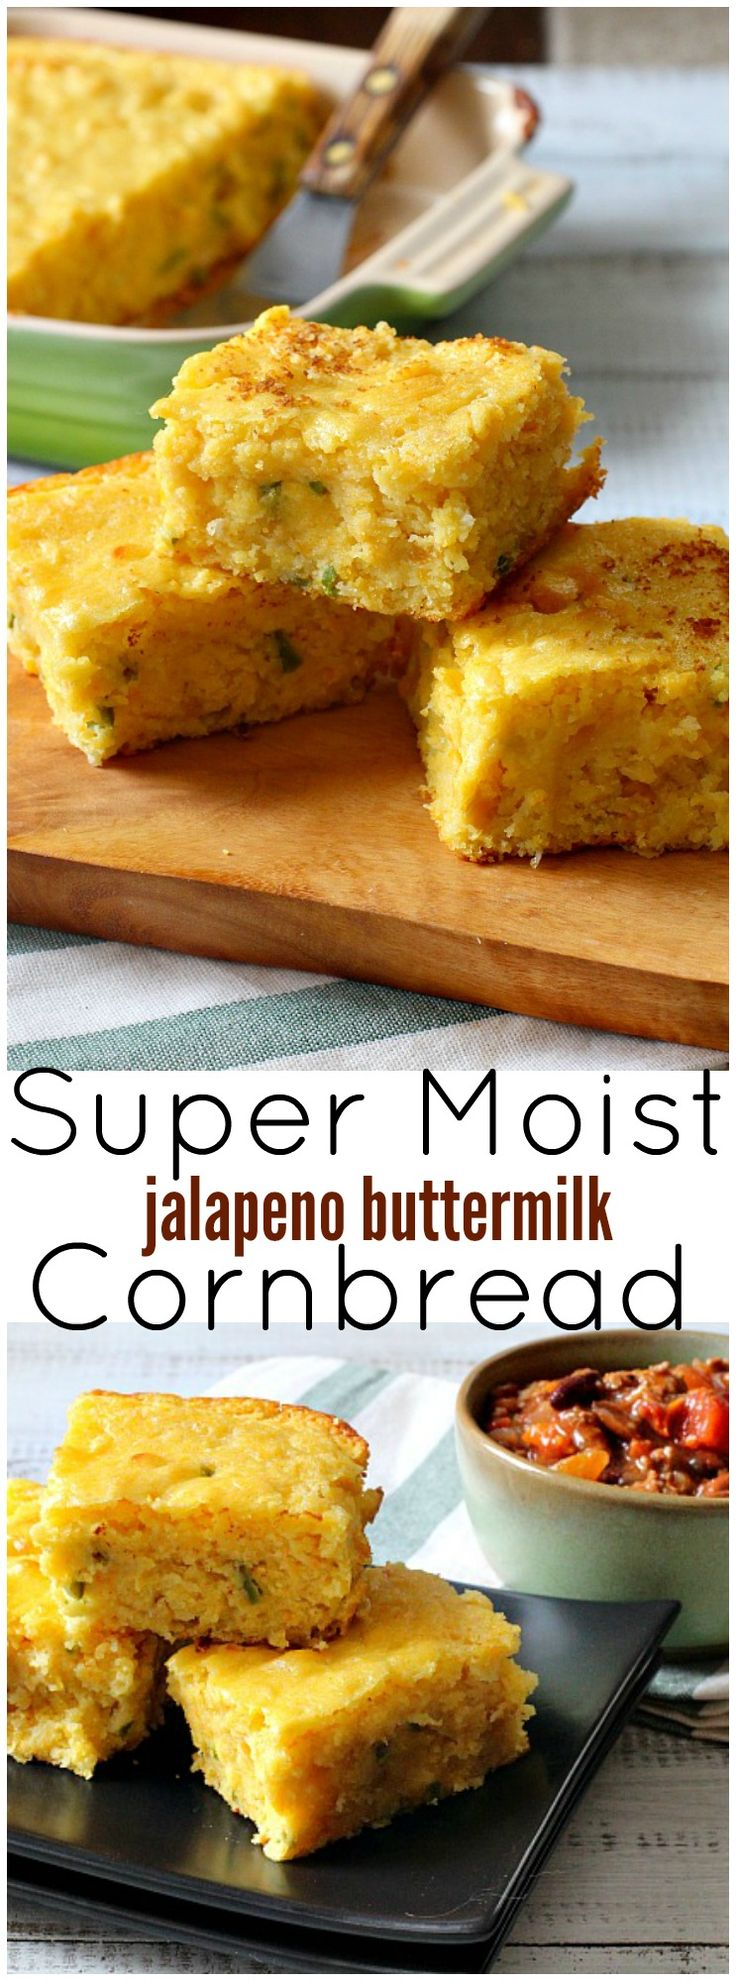 You'd almost swear there was pudding in this Super Moist Cornbread recipe. Using creamed corn and Munster cheese is one of the secrets to this homemade buttermilk cornbread recipe. Our family favorite. #moist #cornbread via @lannisam